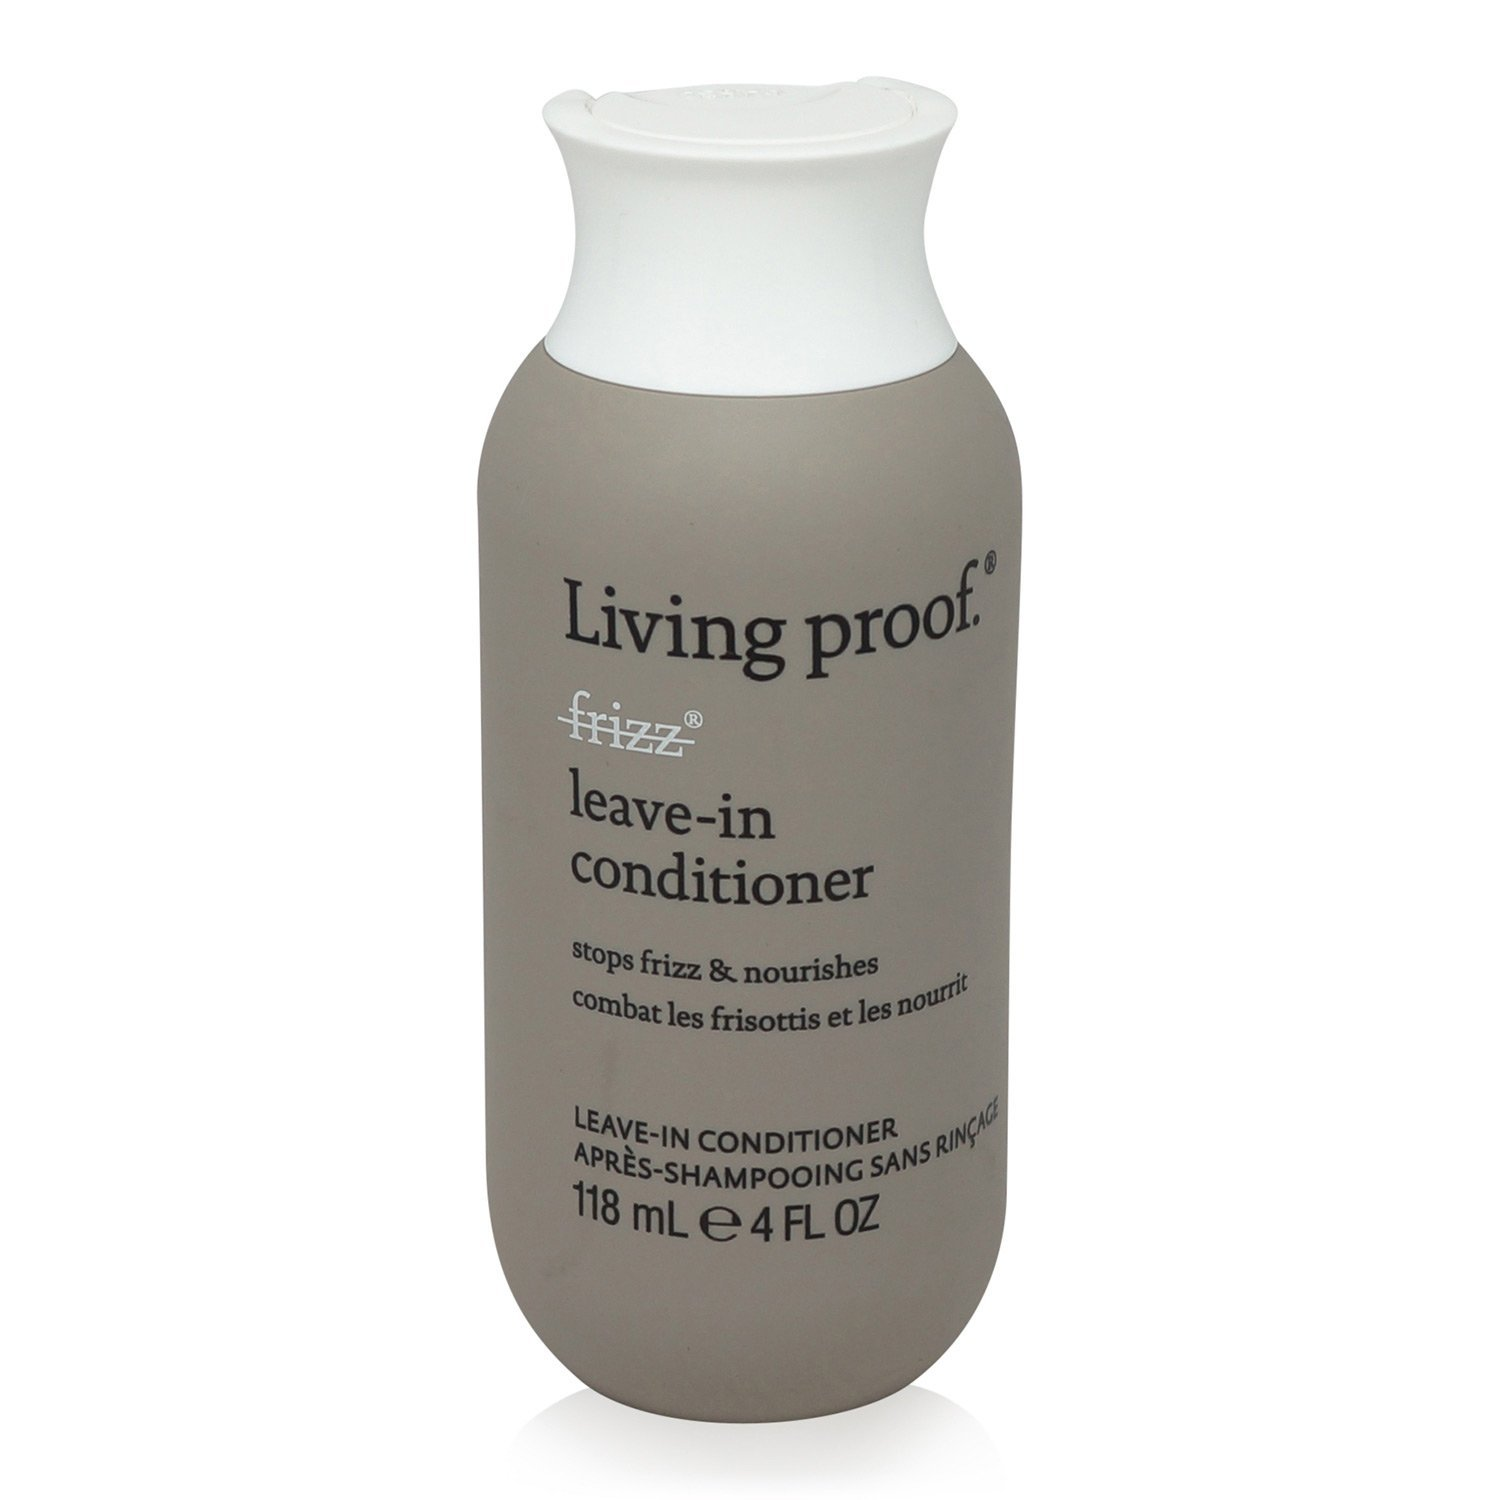 Living Proof No Frizz Leave-in Conditioner, 4-Ounce by Living Proof